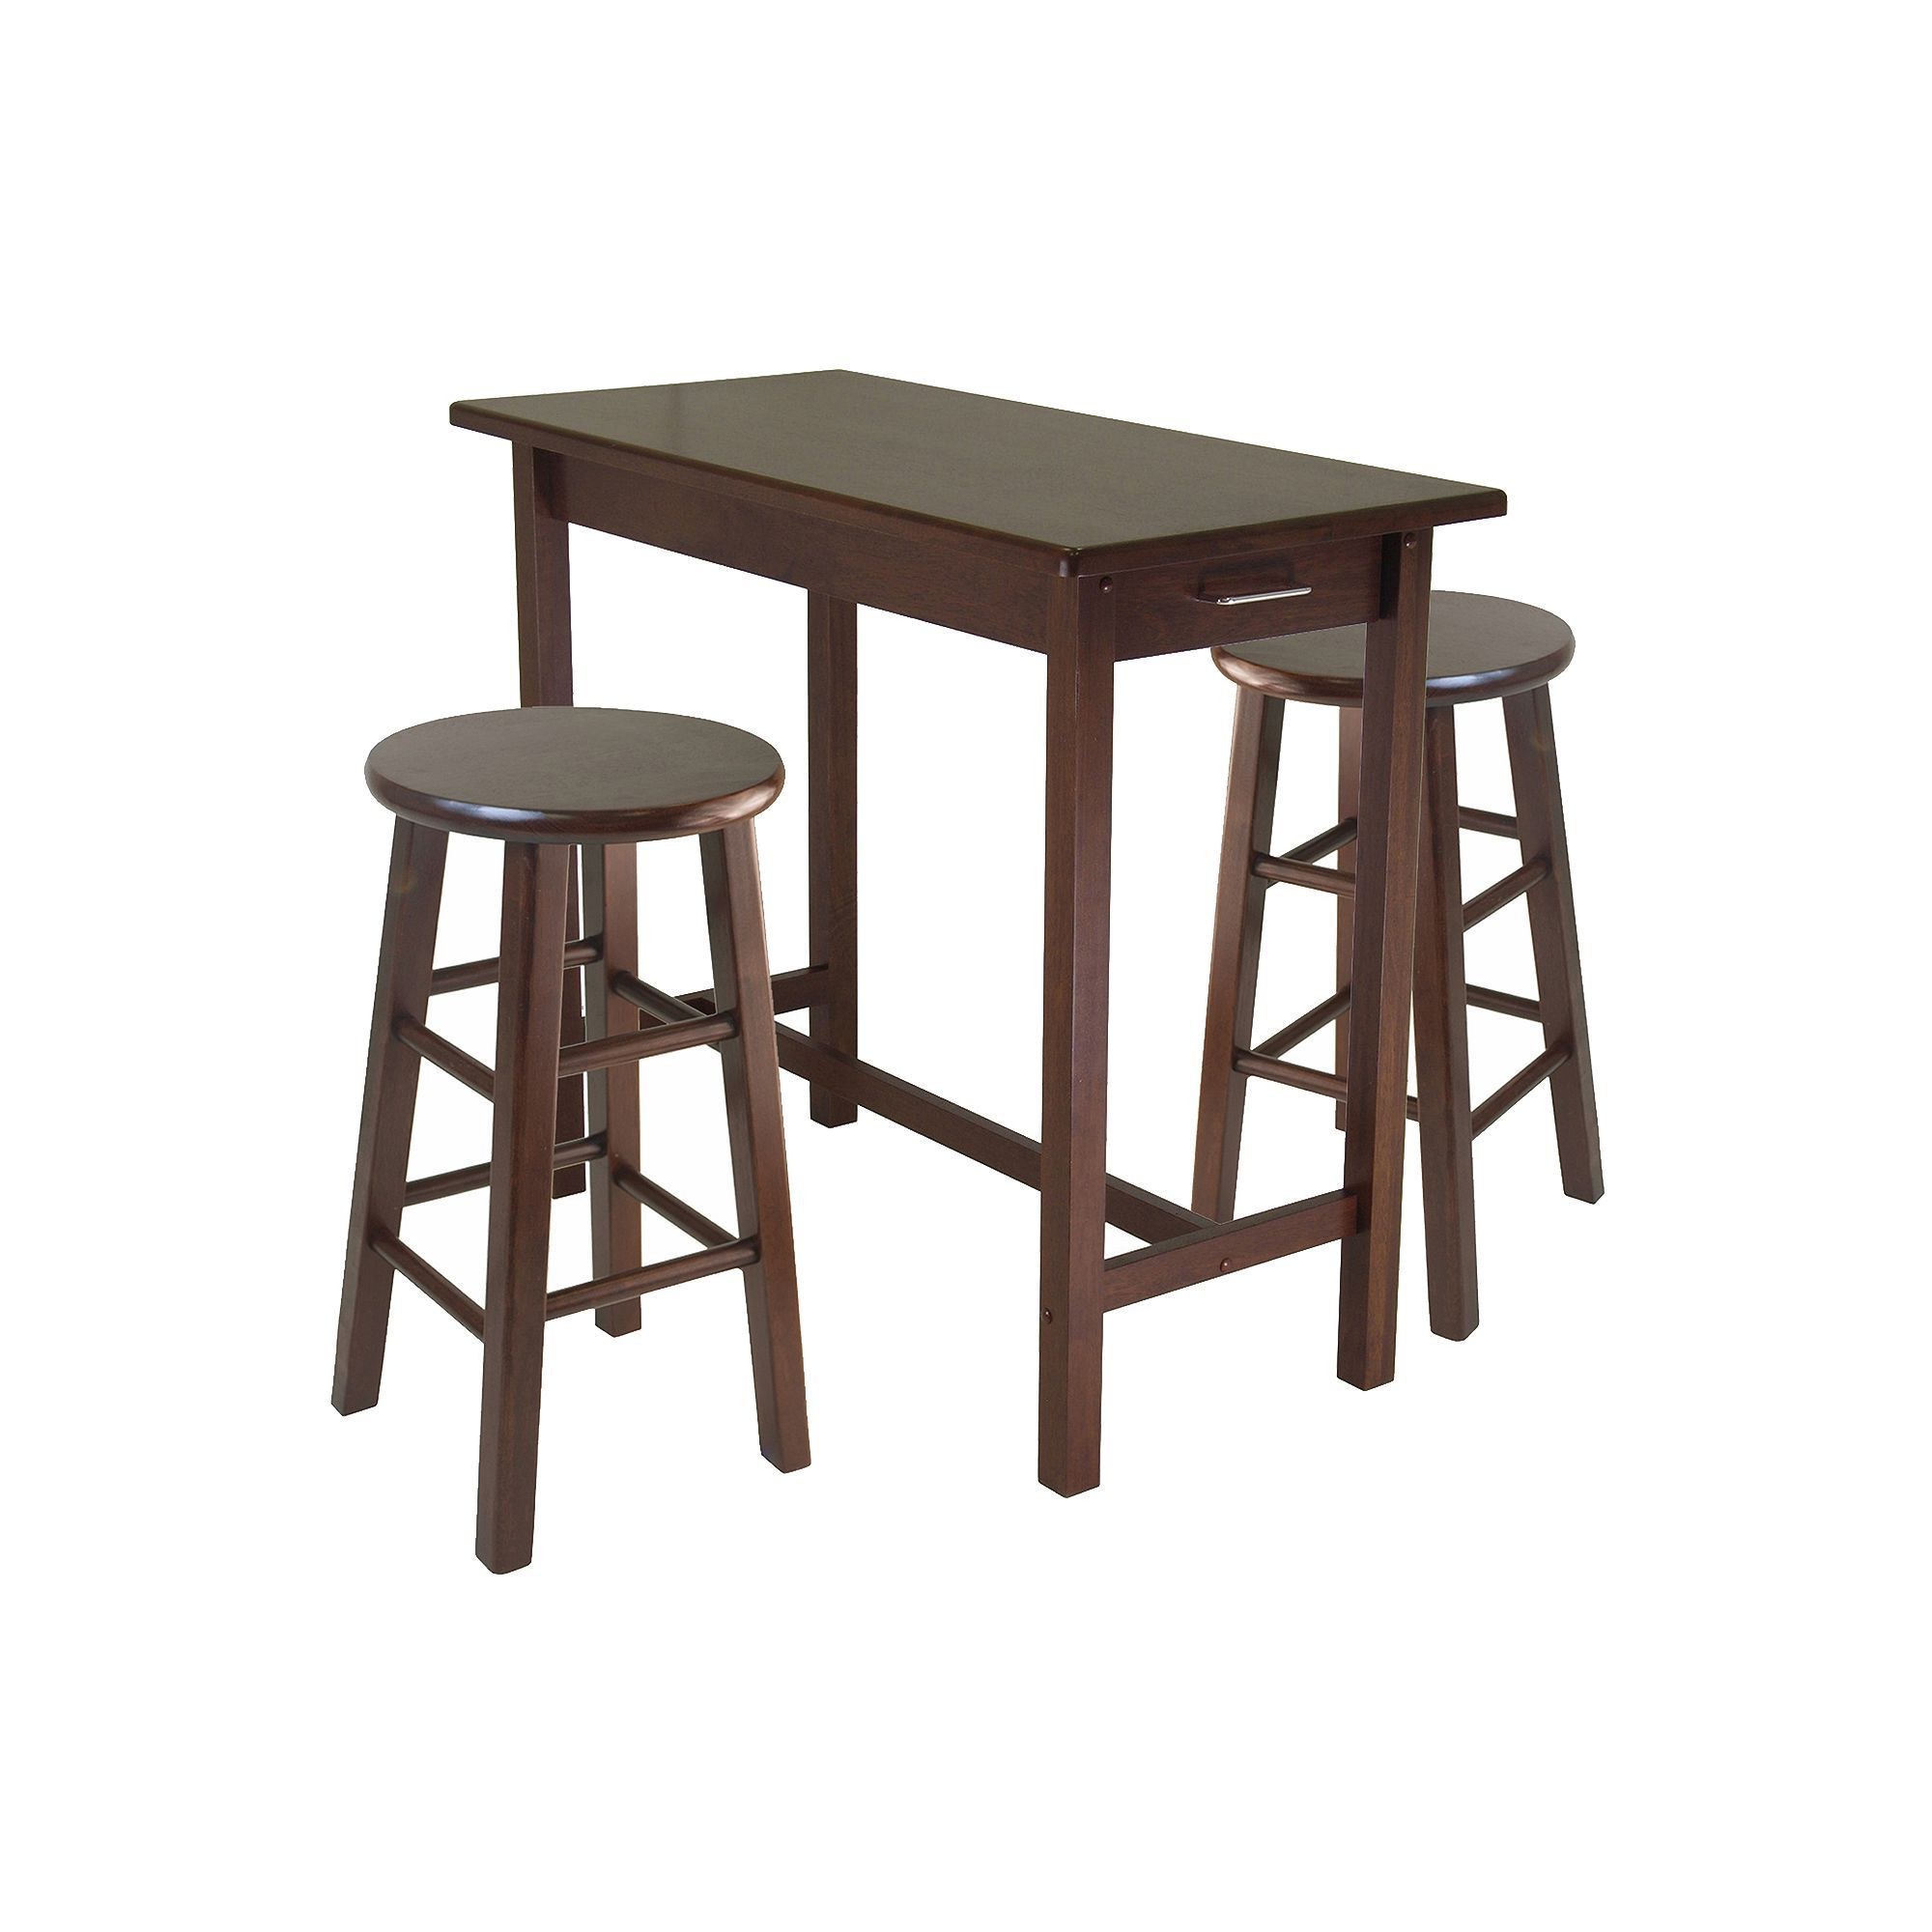 Counter Pertaining To Well Known Winsome 3 Piece Counter Height Dining Sets (View 4 of 25)